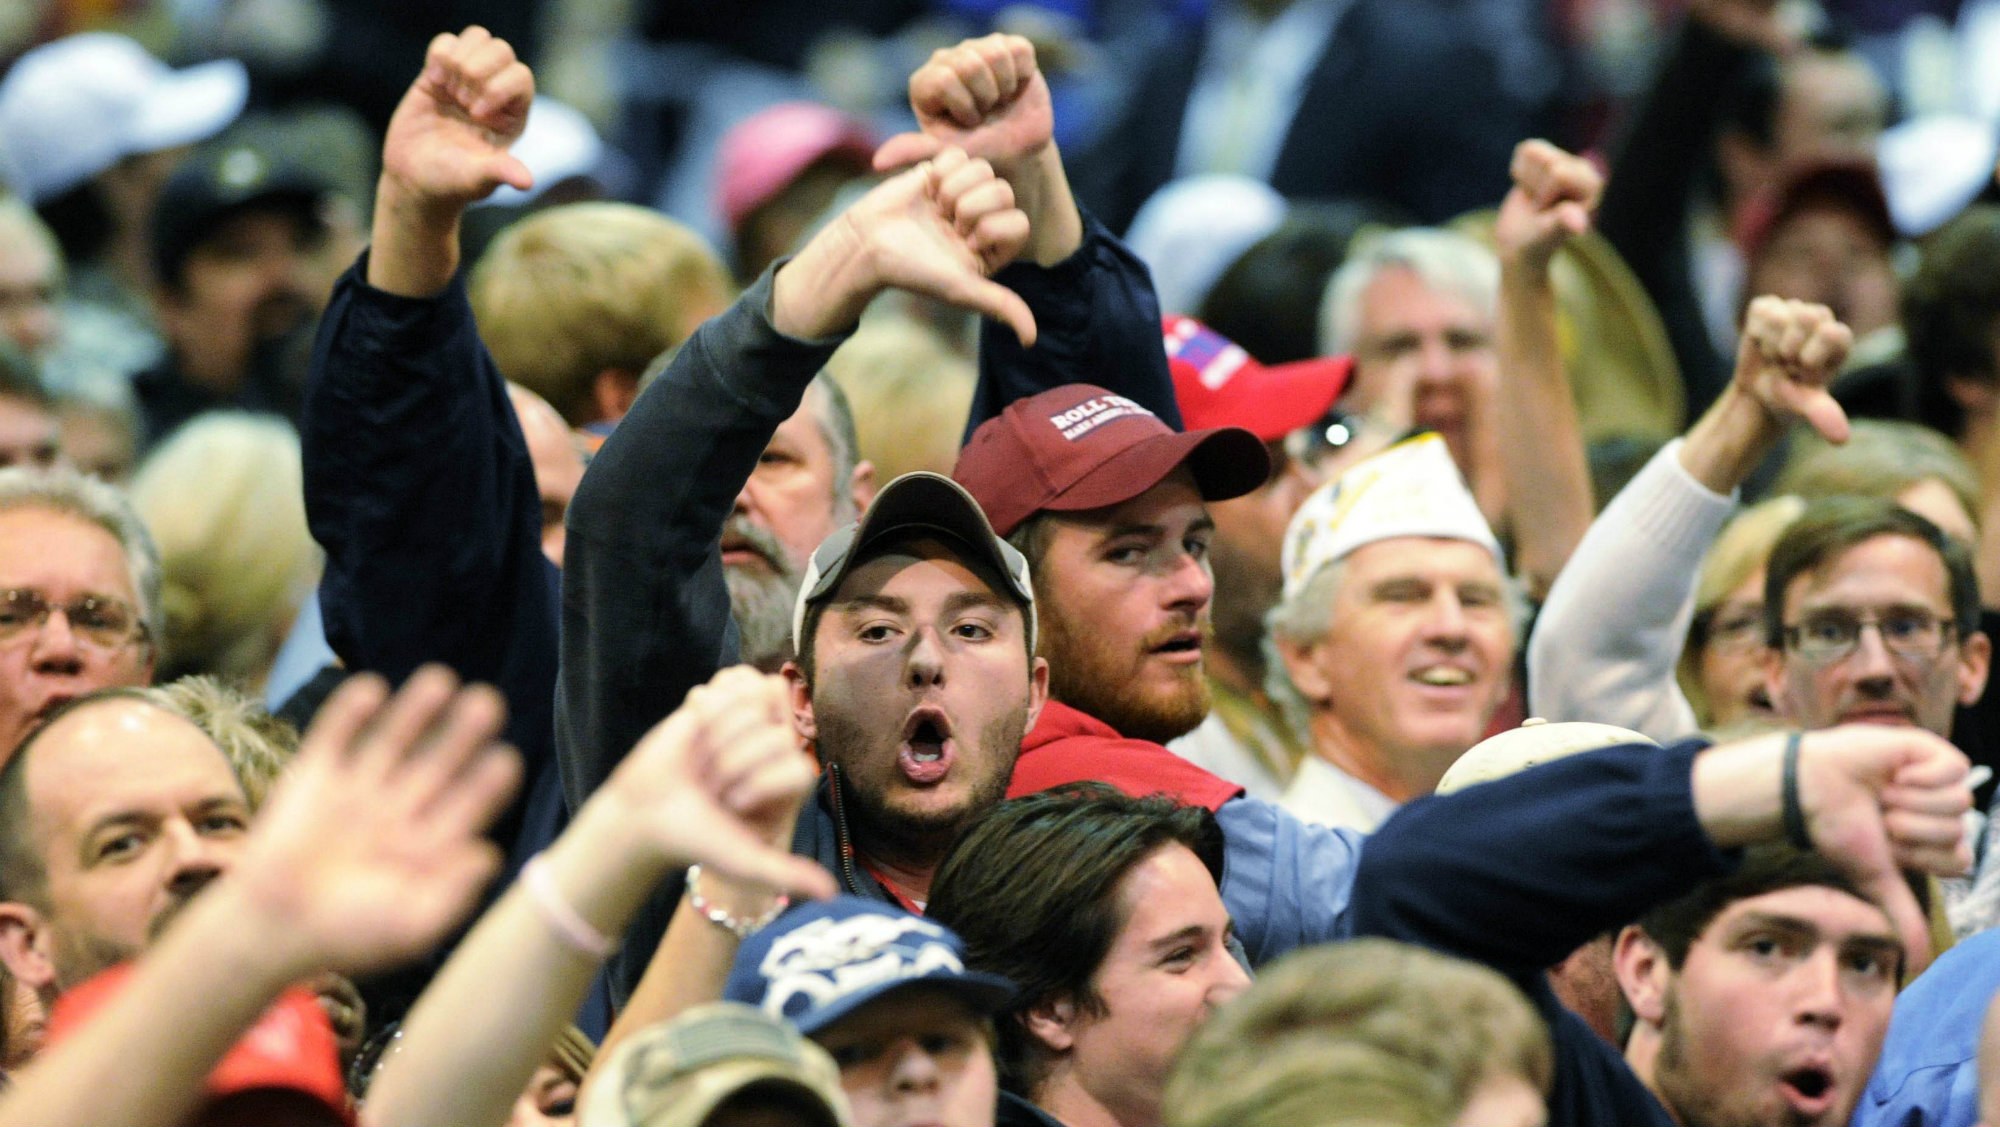 """Trump supporters """"boo"""" members of the media after a heckler was removed during a campaign stop by Republican presidential candidate Donald Trump in Birmingham, Alabama."""